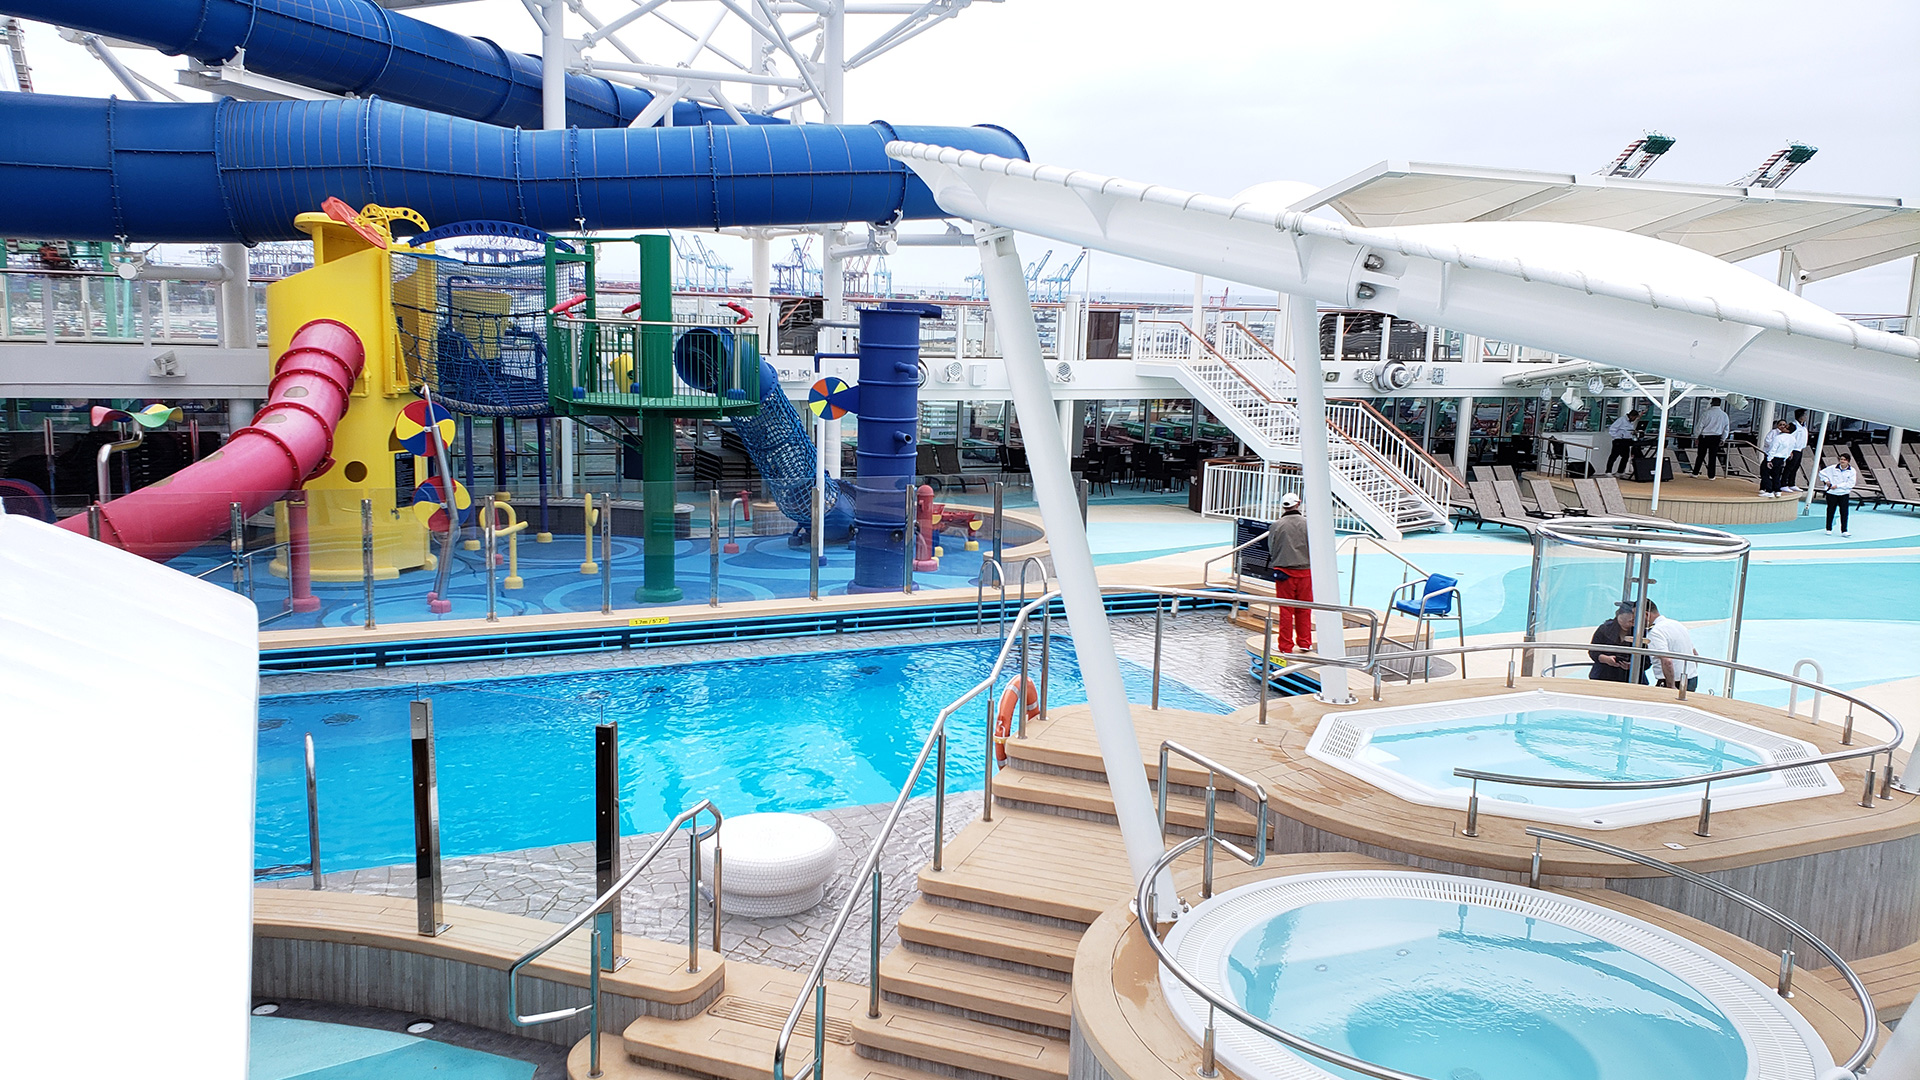 Cruise water park